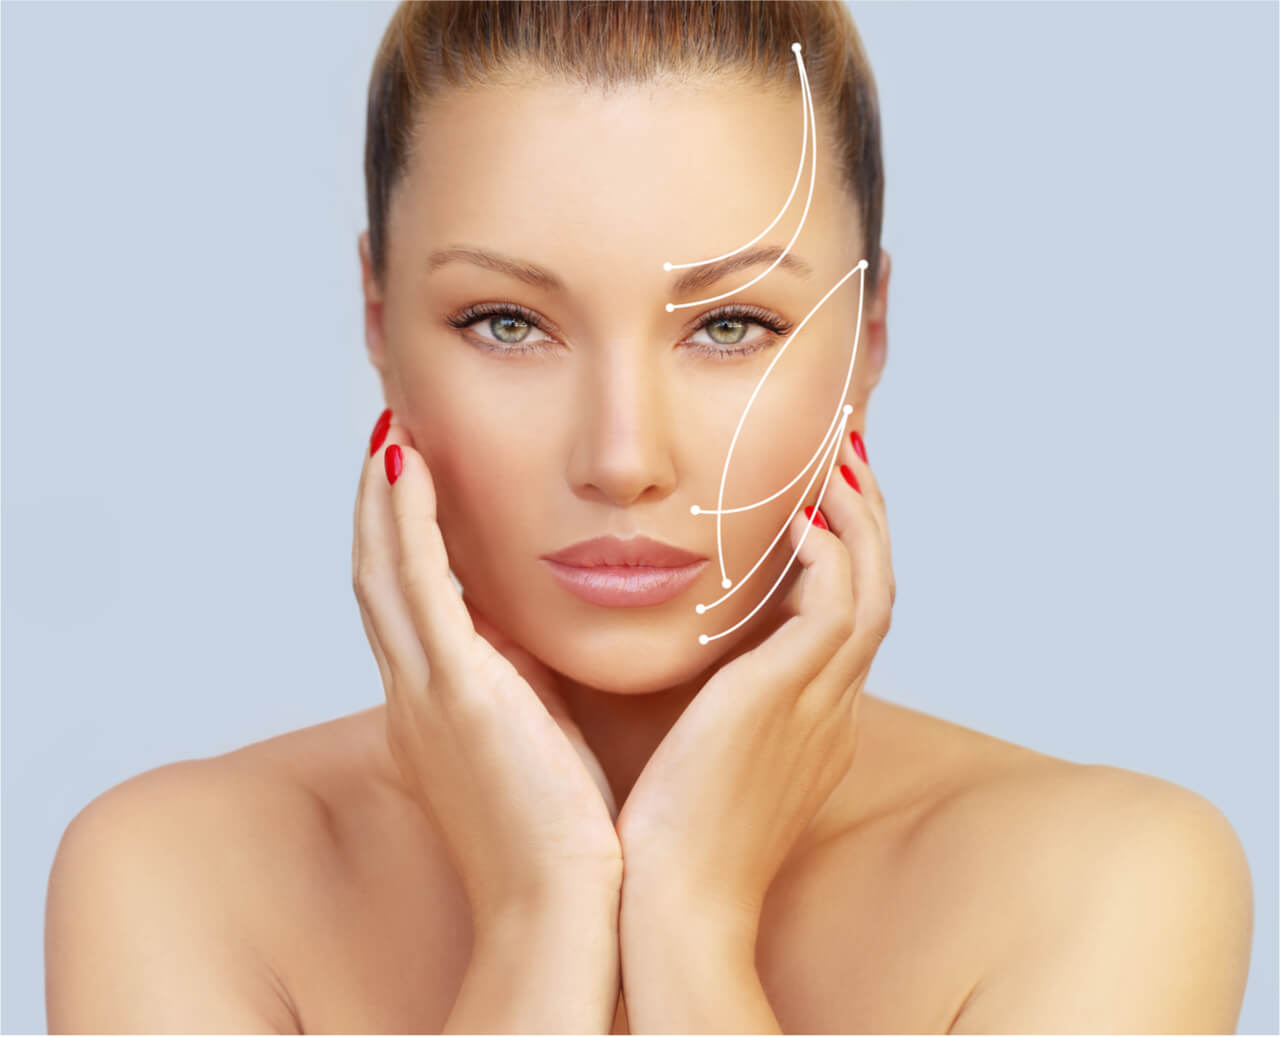 Chin Cosmetic Surgery